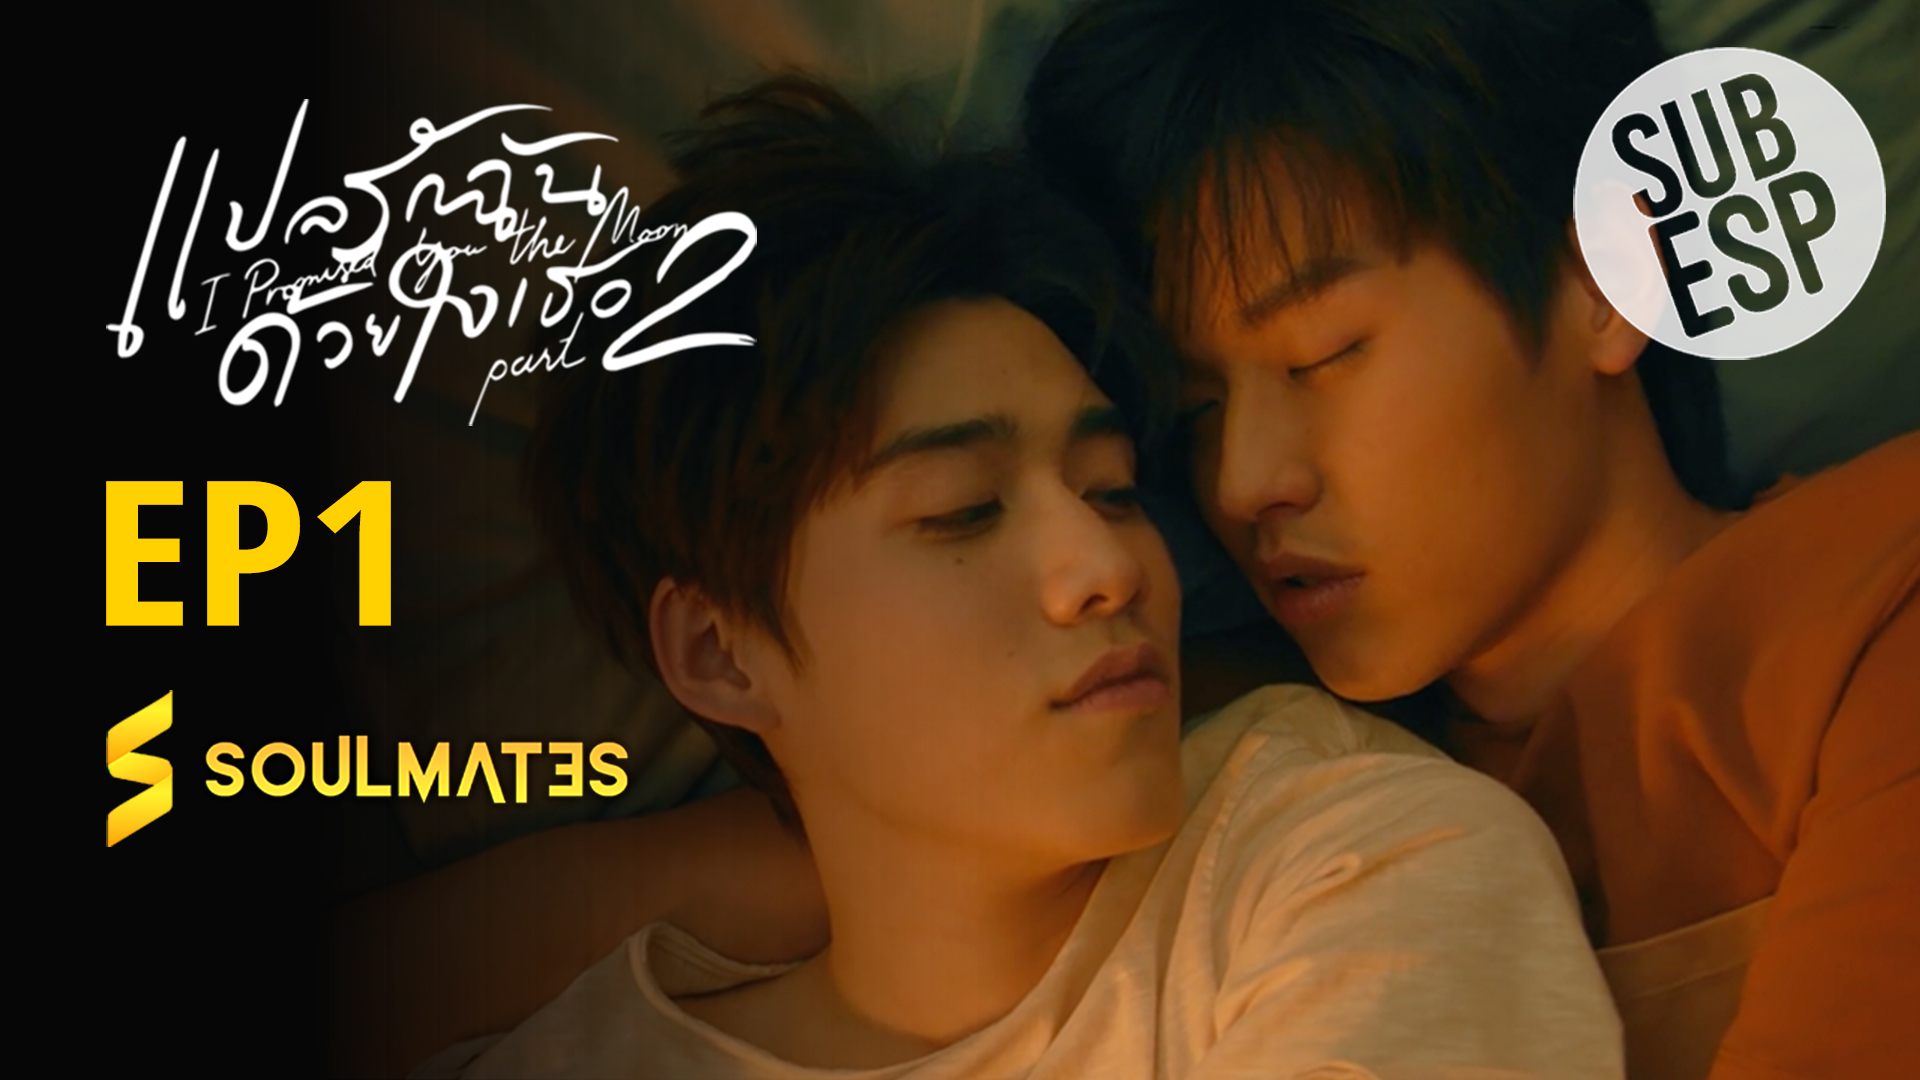 I Told Sunset About You: T2-E1